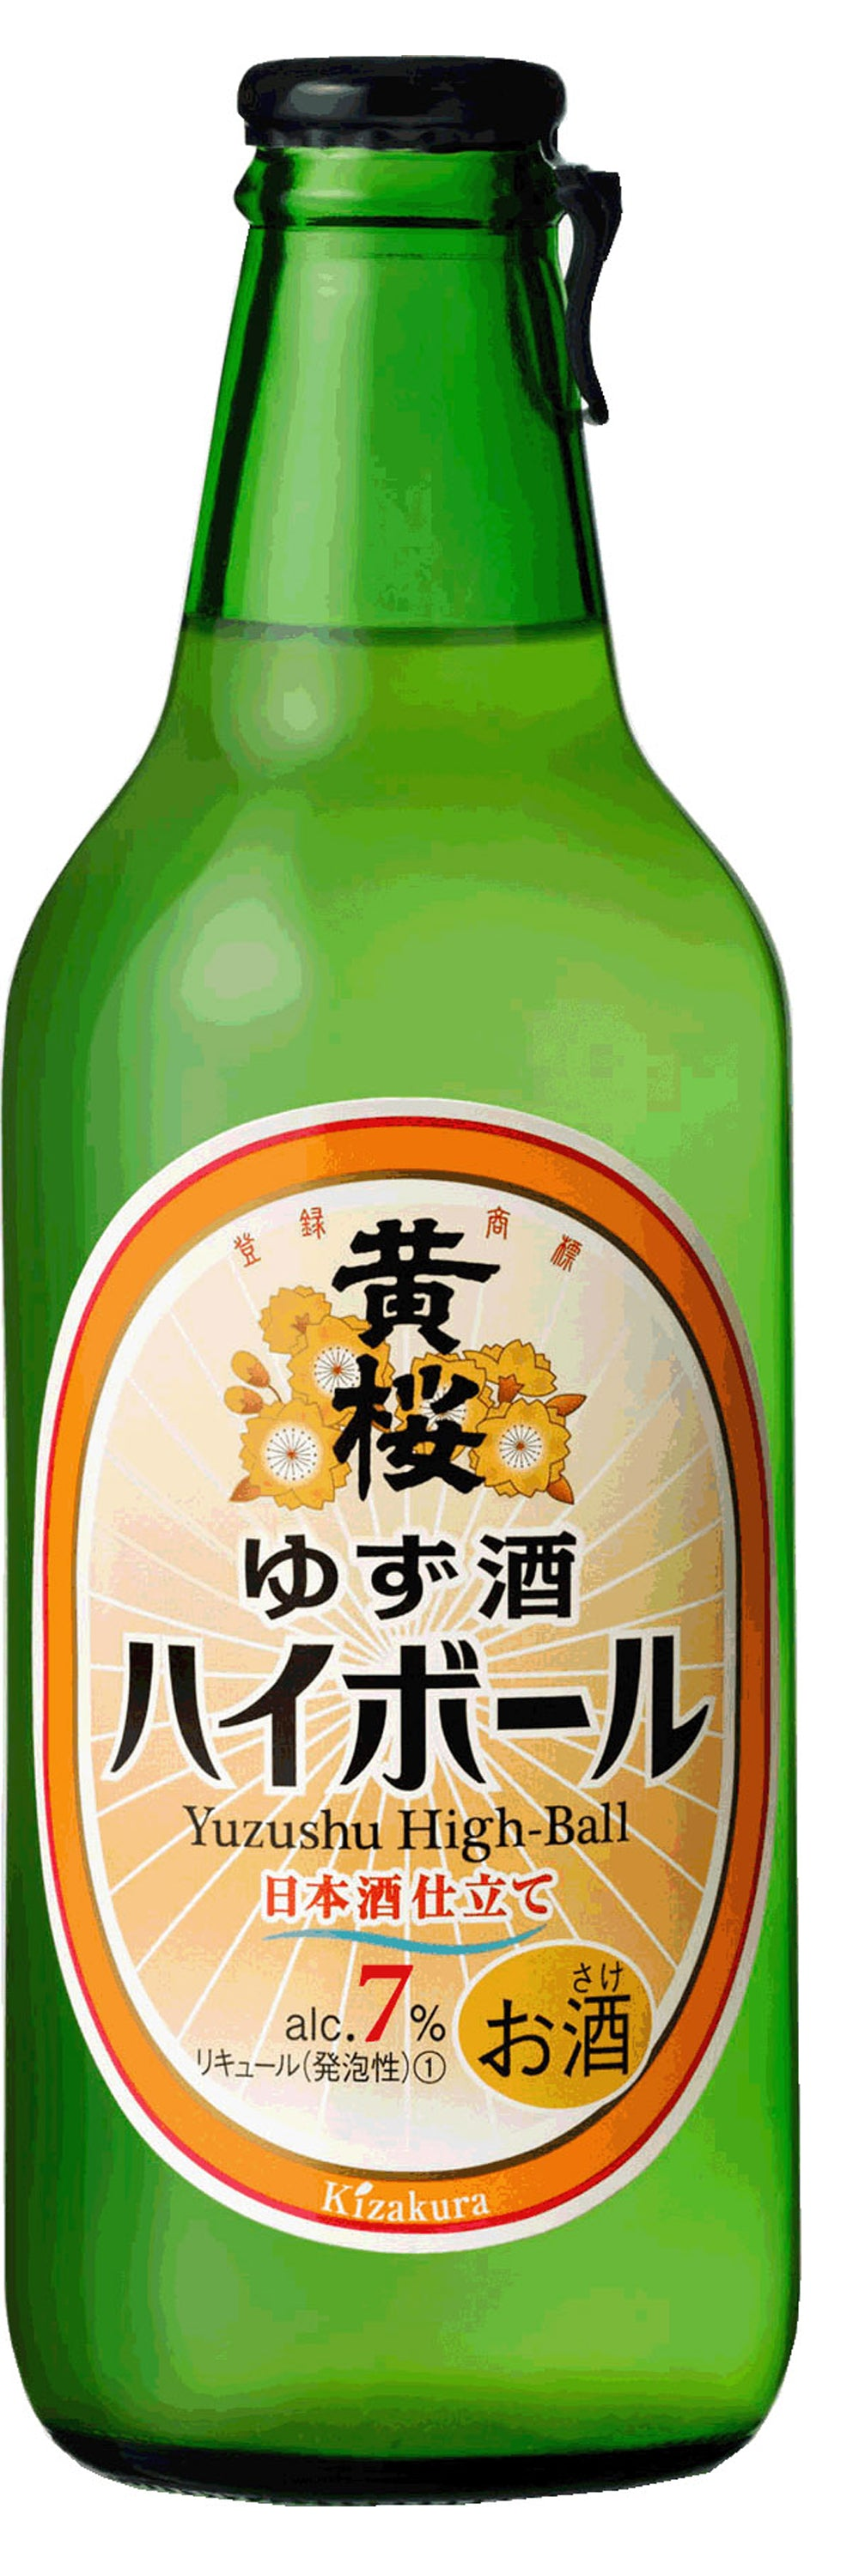 Kizakura Yuzu High Ball 330ml x 6 bottles